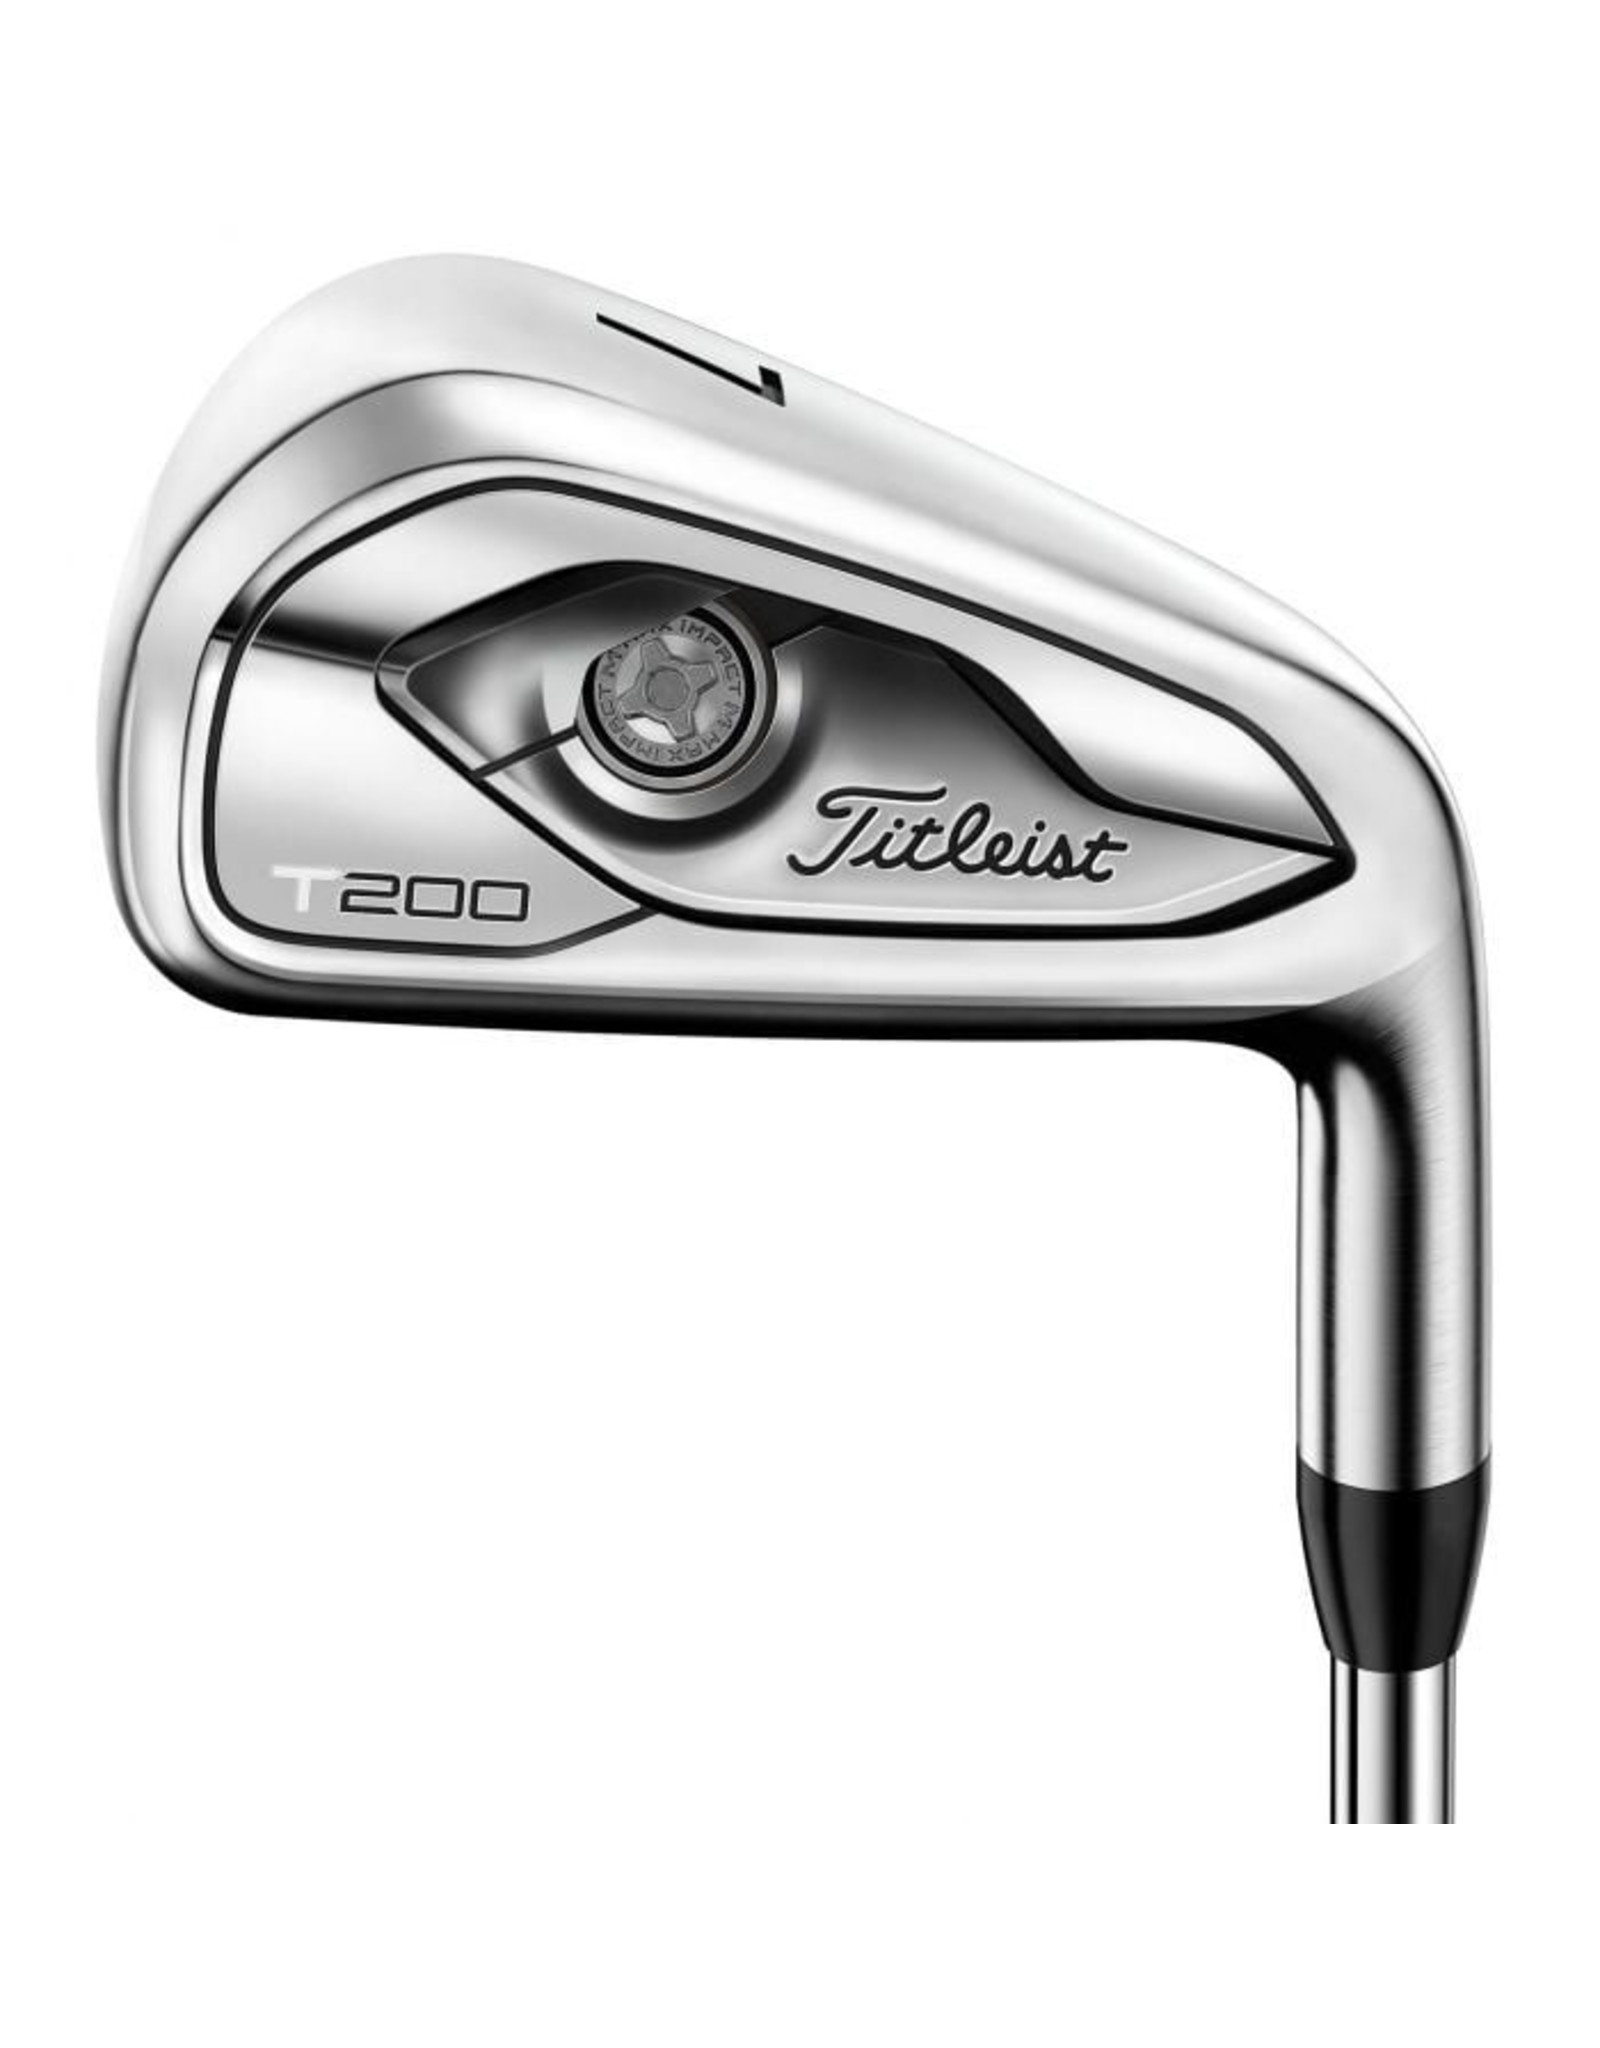 TITLEIST TITLEIST T200 IRON - STEEL